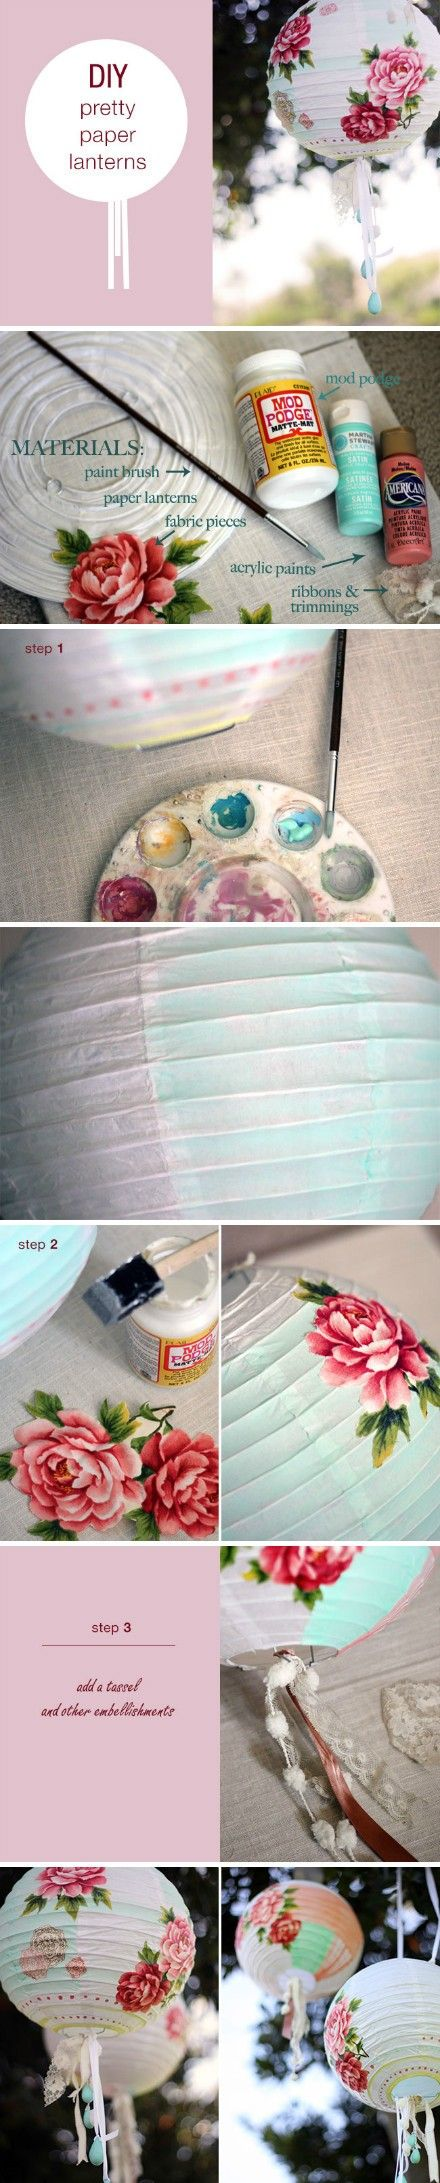 Pretty paper lanterns DIY (Japanese web site?)